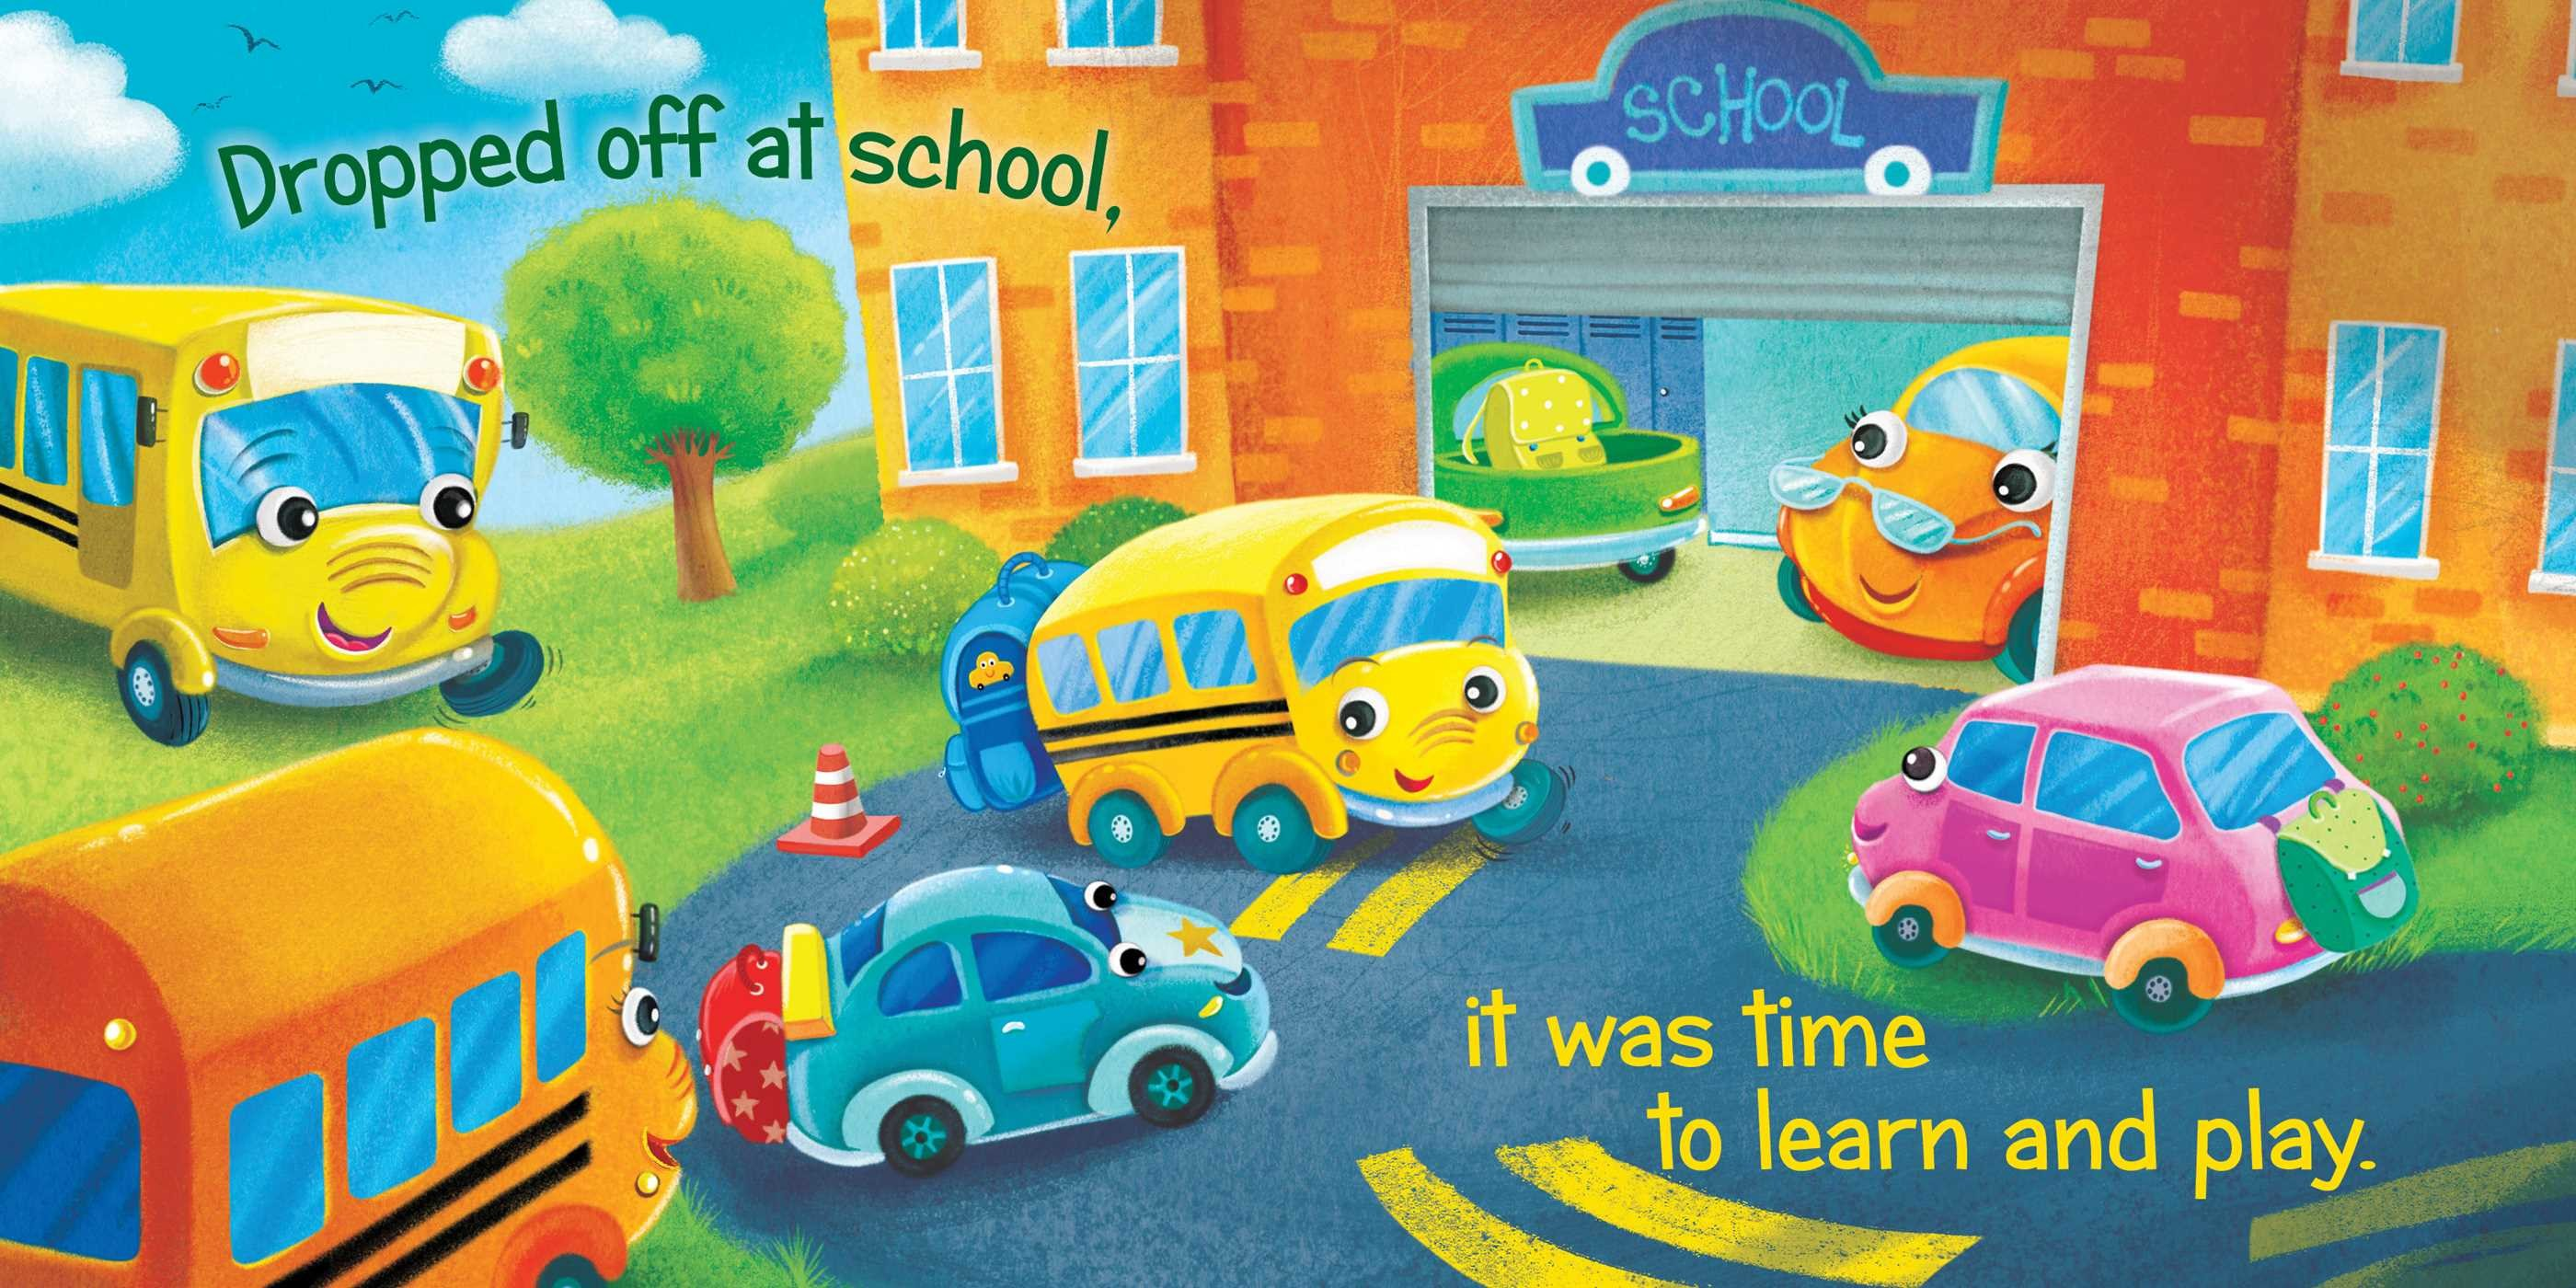 The itsy bitsy school bus 9781534416956.in01